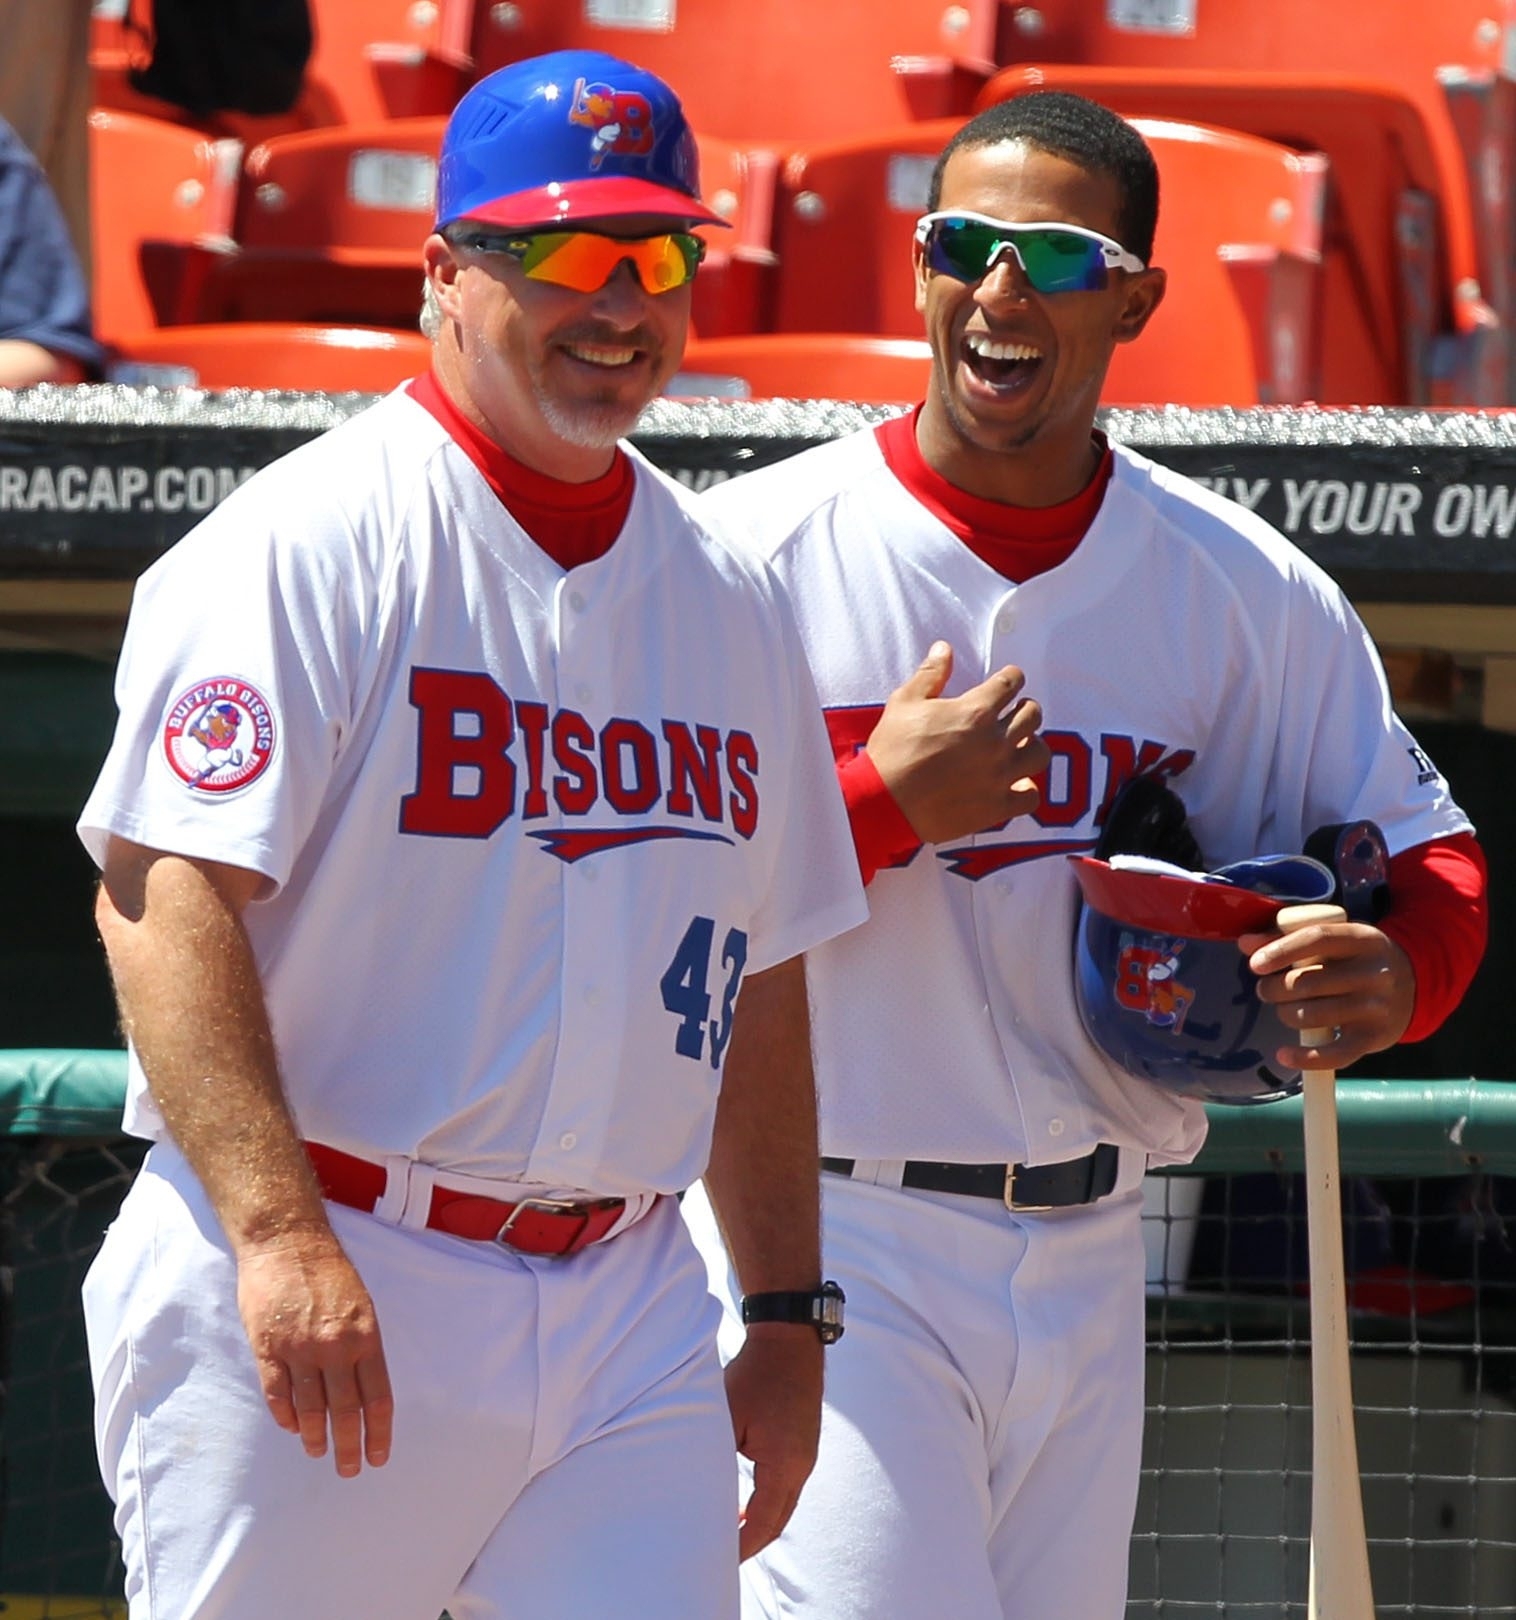 The Bisons were thrilled with Marty Brown's work in 2013.